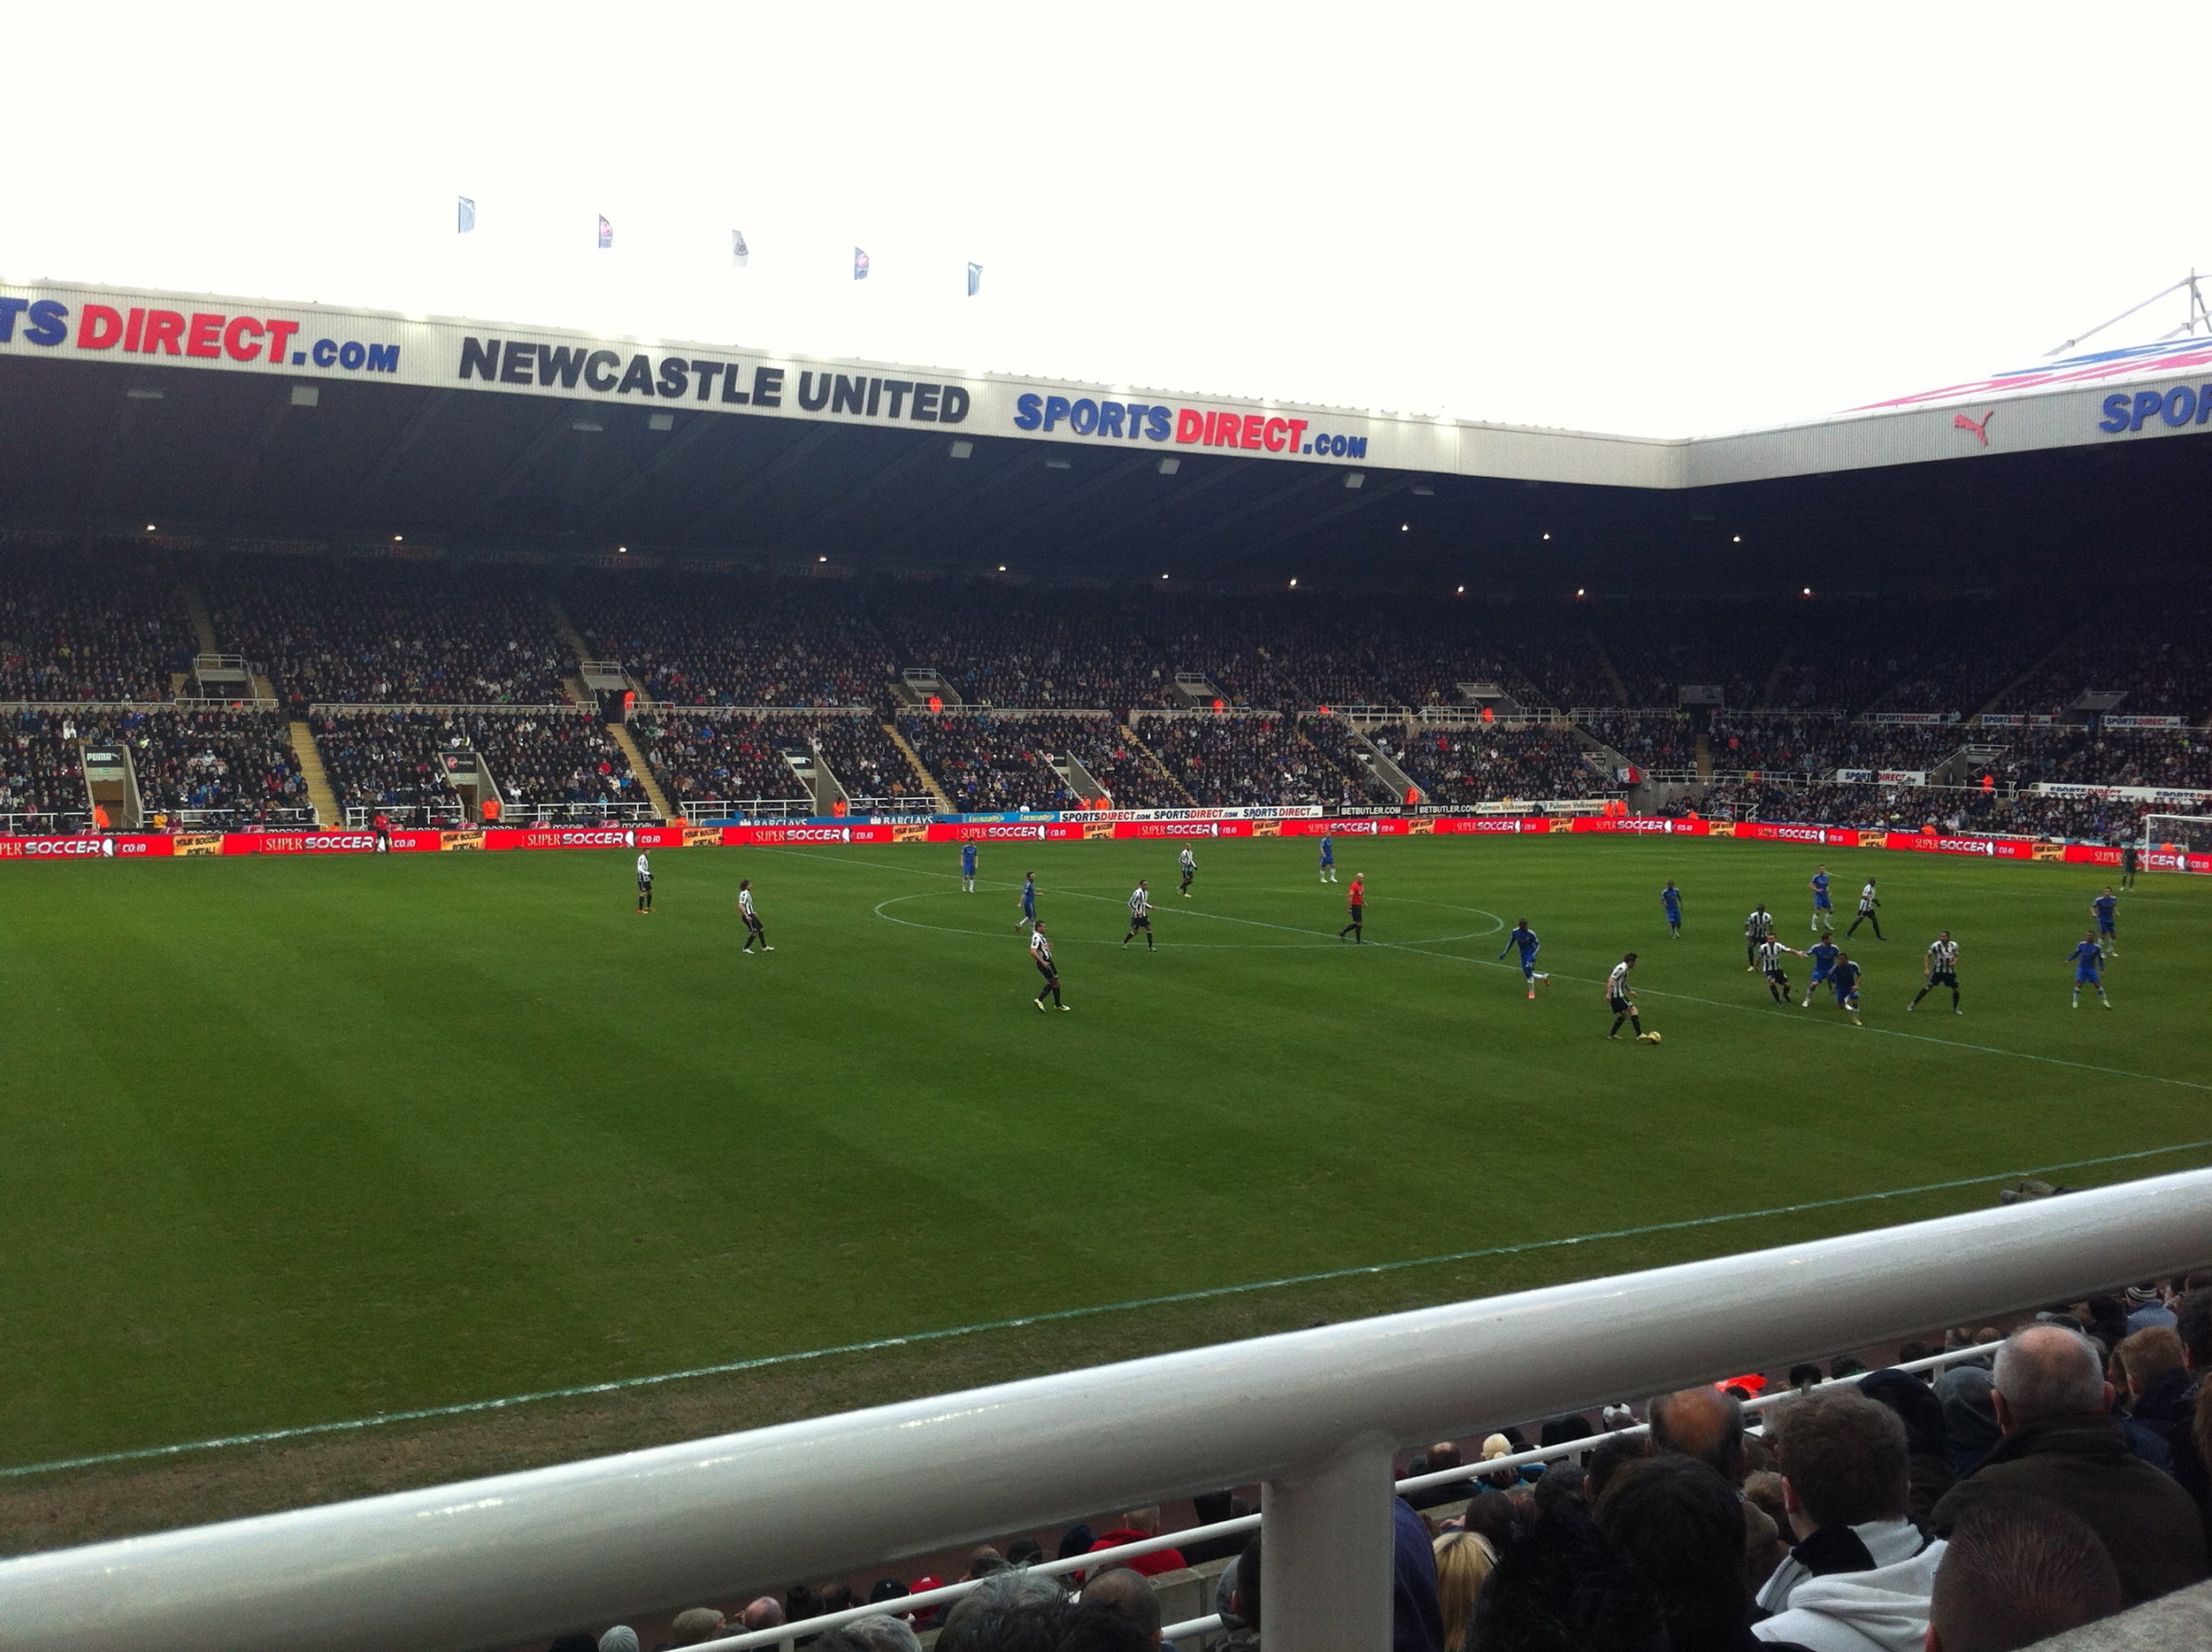 Newcastle vs. Chelsea in 2013, a moment or two before Demba Ba broke his nose